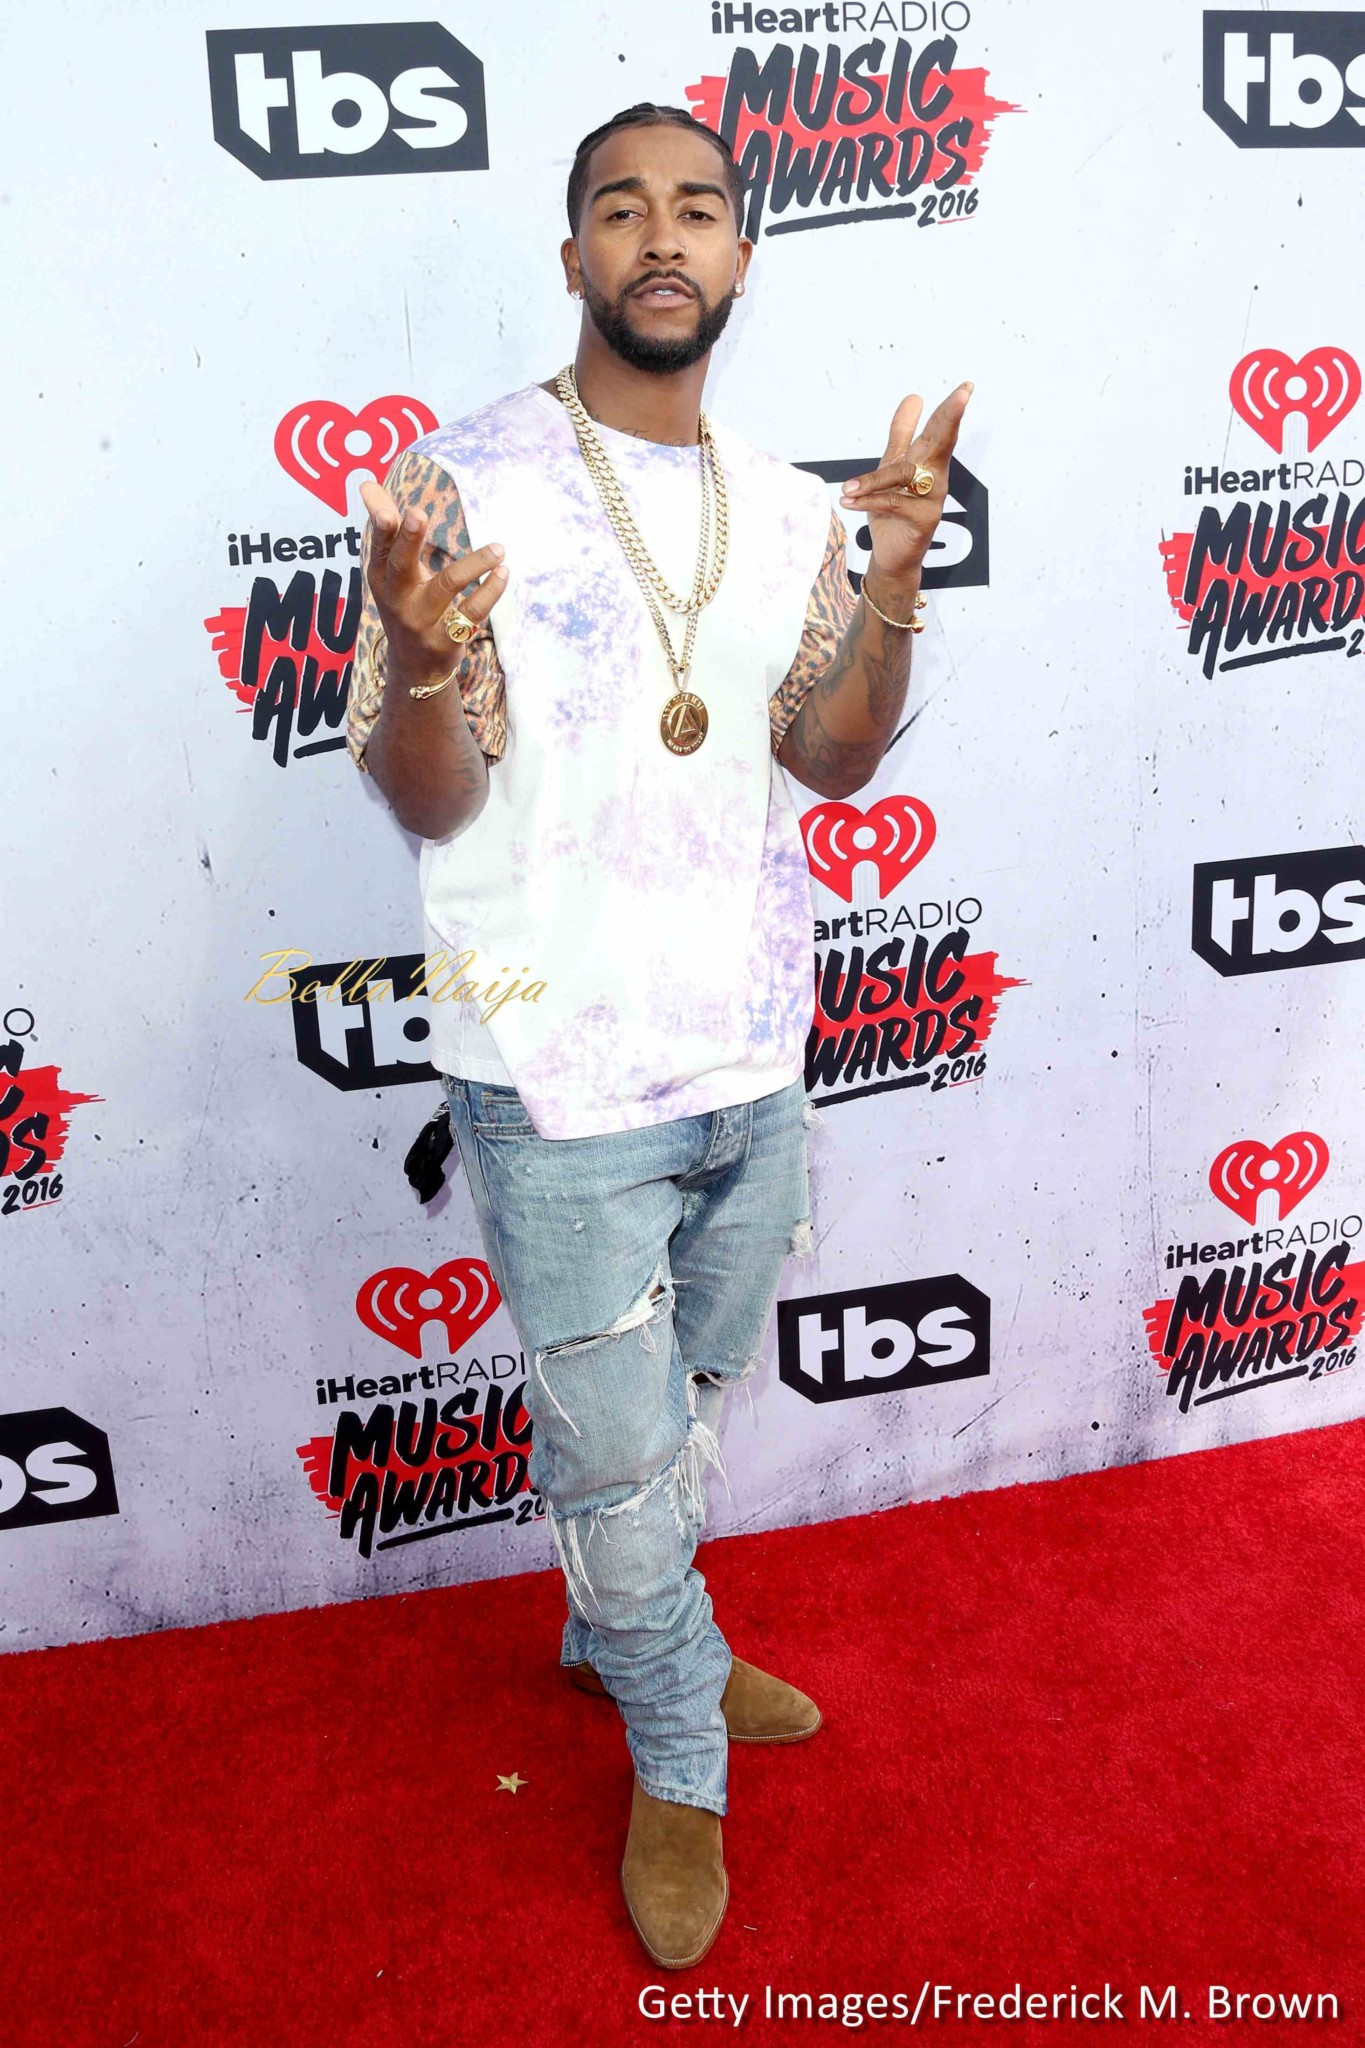 Omarion discusses visiting Africa, Music, Politics on New Interview